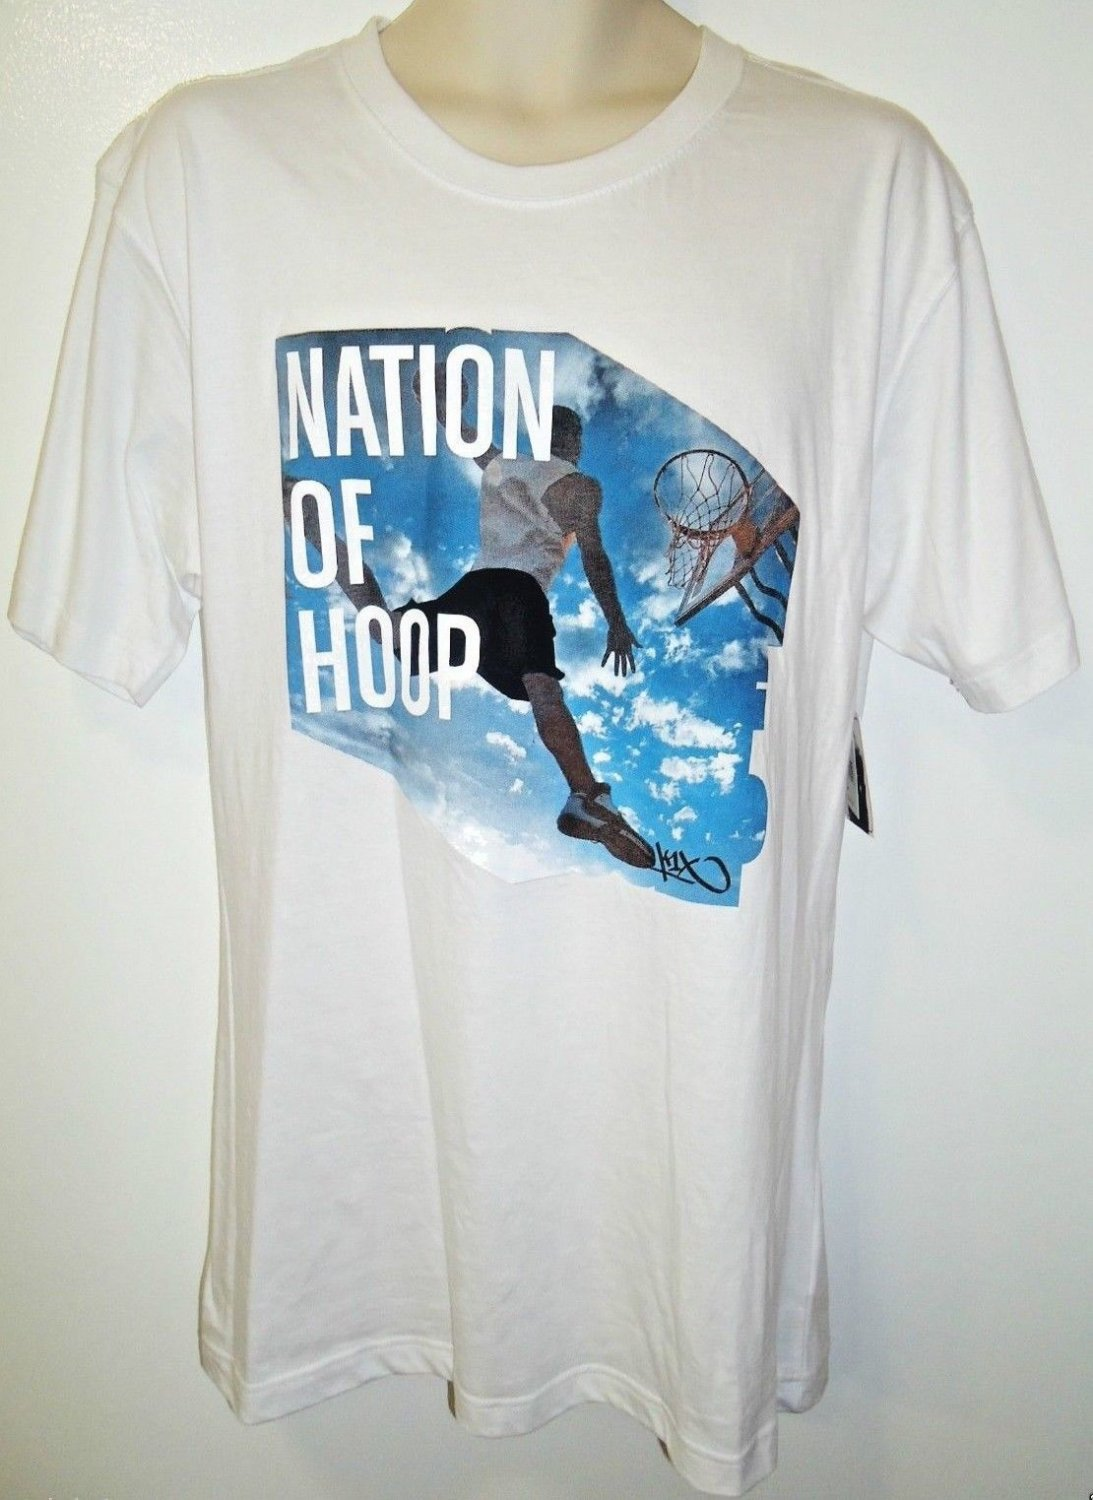 K1X - NATION OF HOOP - STREET - BASKETBALL - TEE - LARGE - NEW - WHITE - T-SHIRT